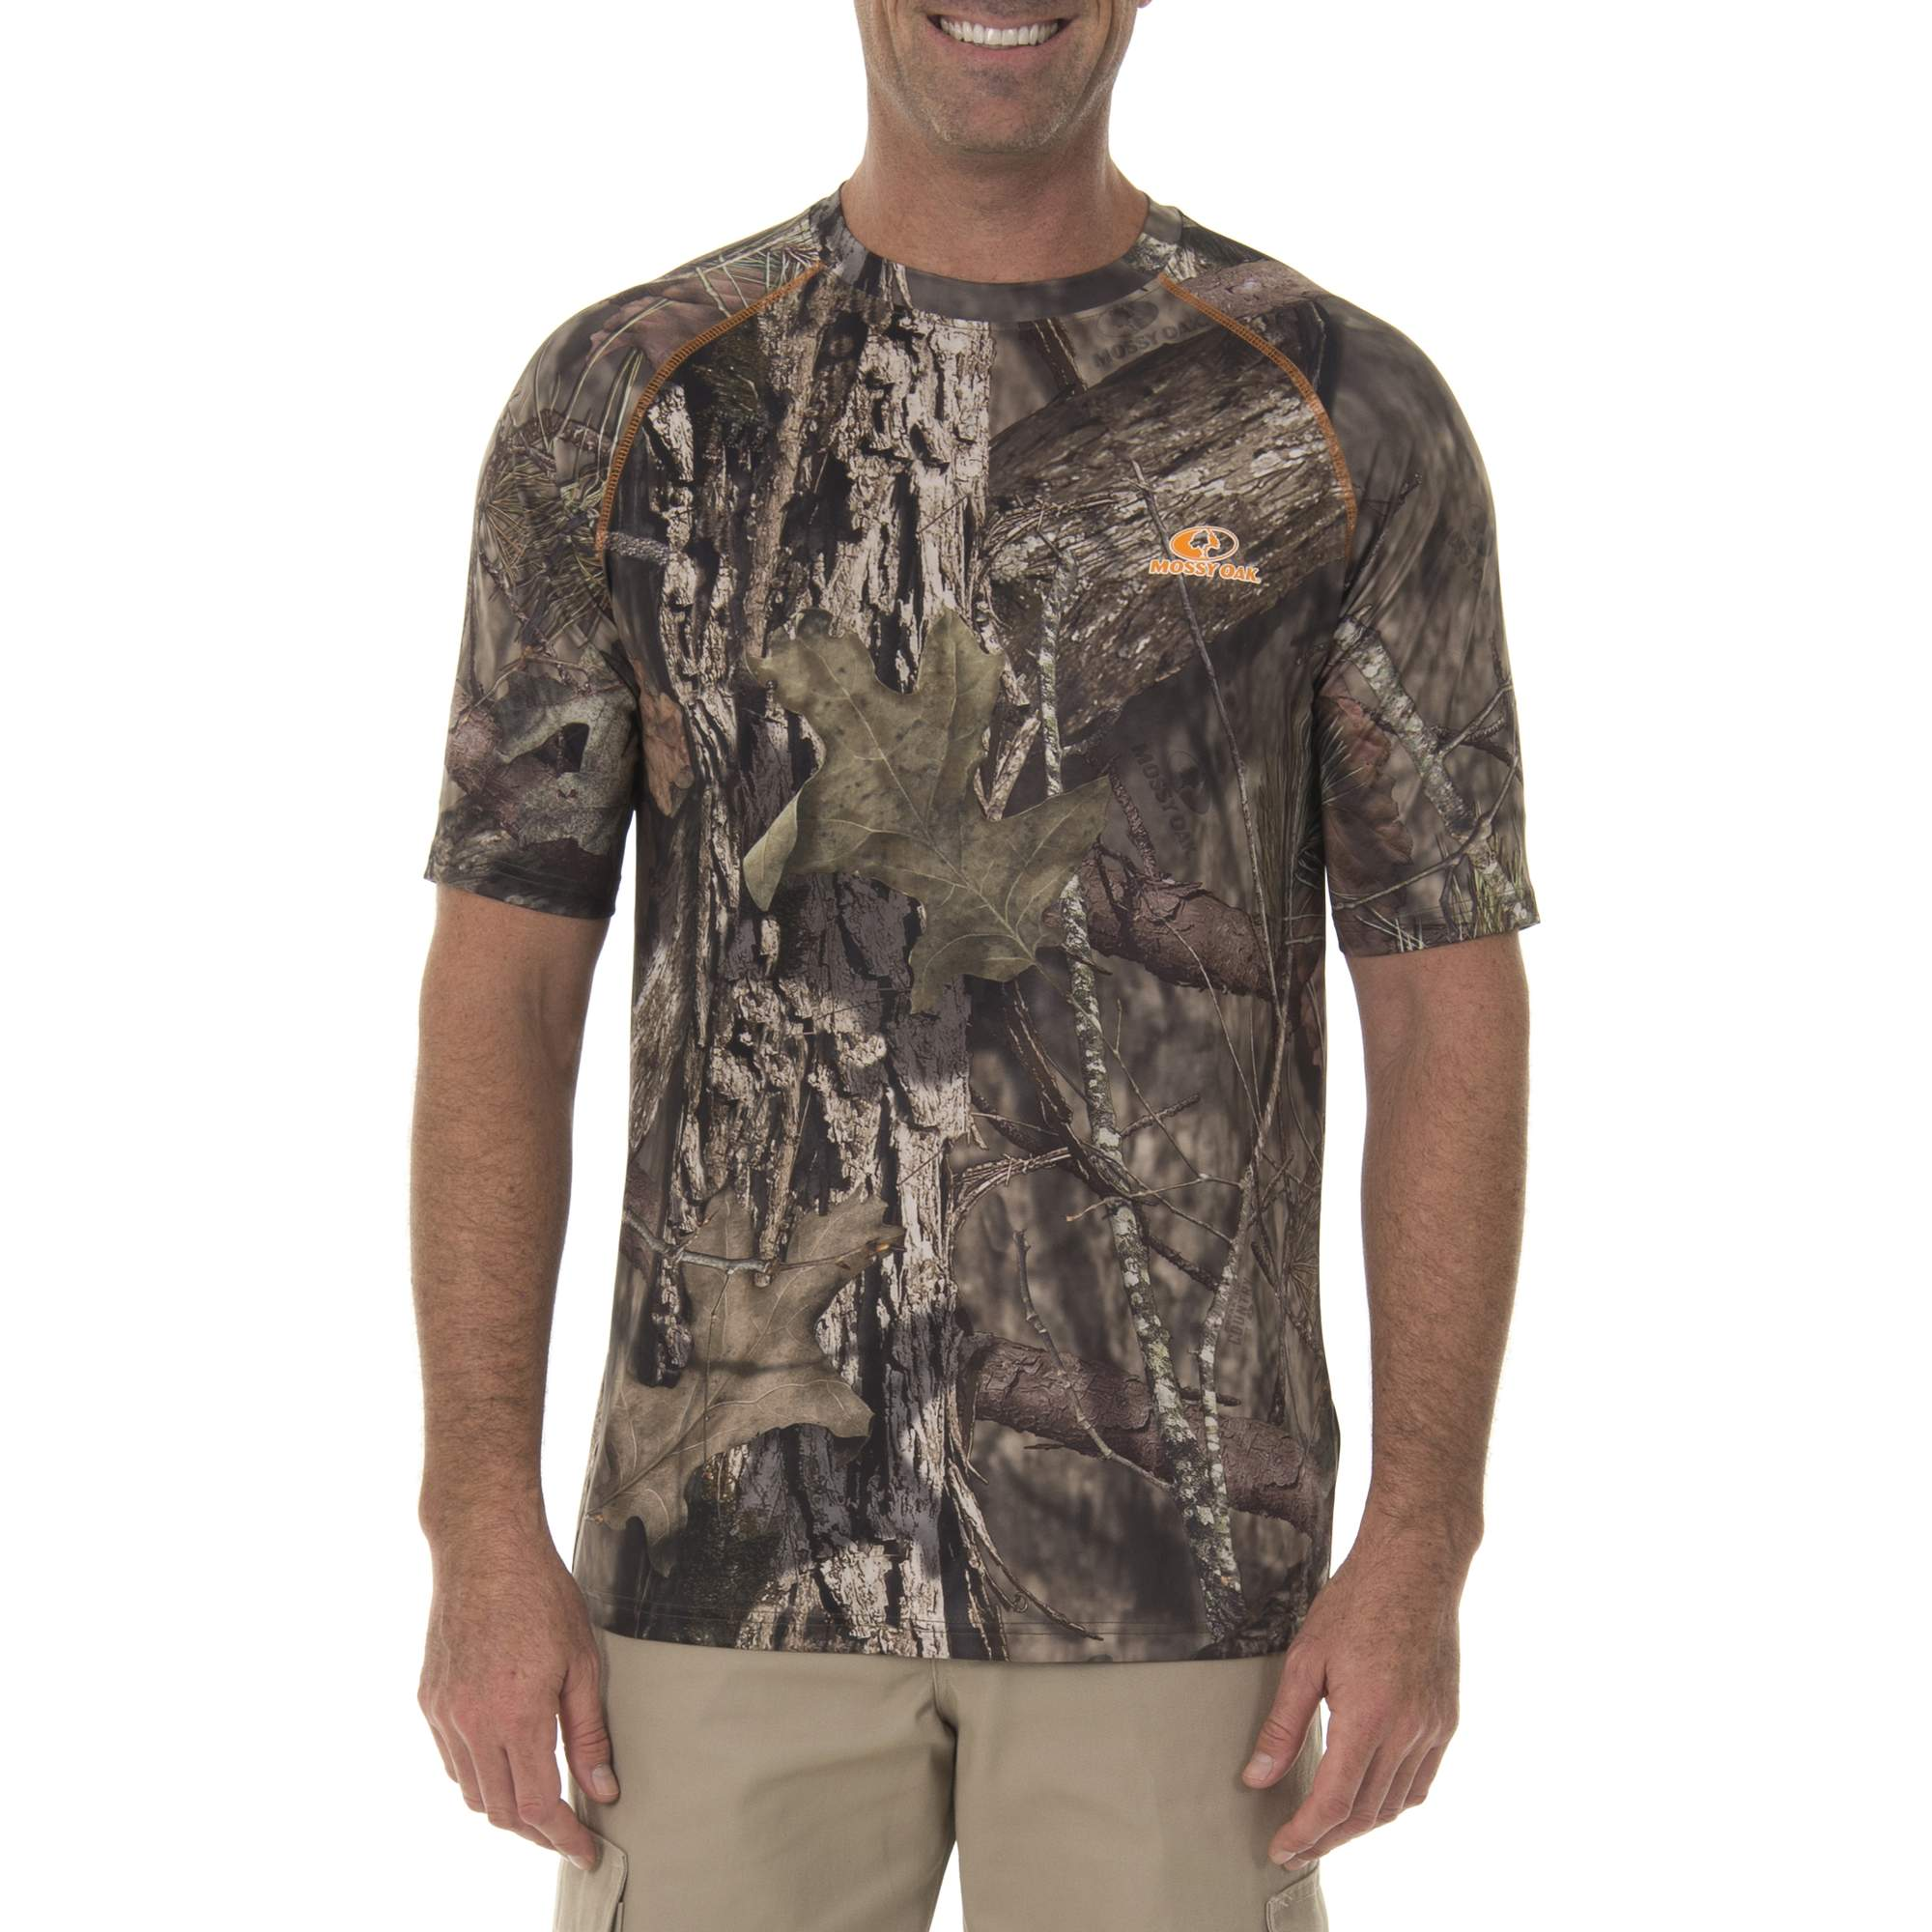 Realtree & Mossy Oak Insect Repellant Performance Short Sleeve Tee